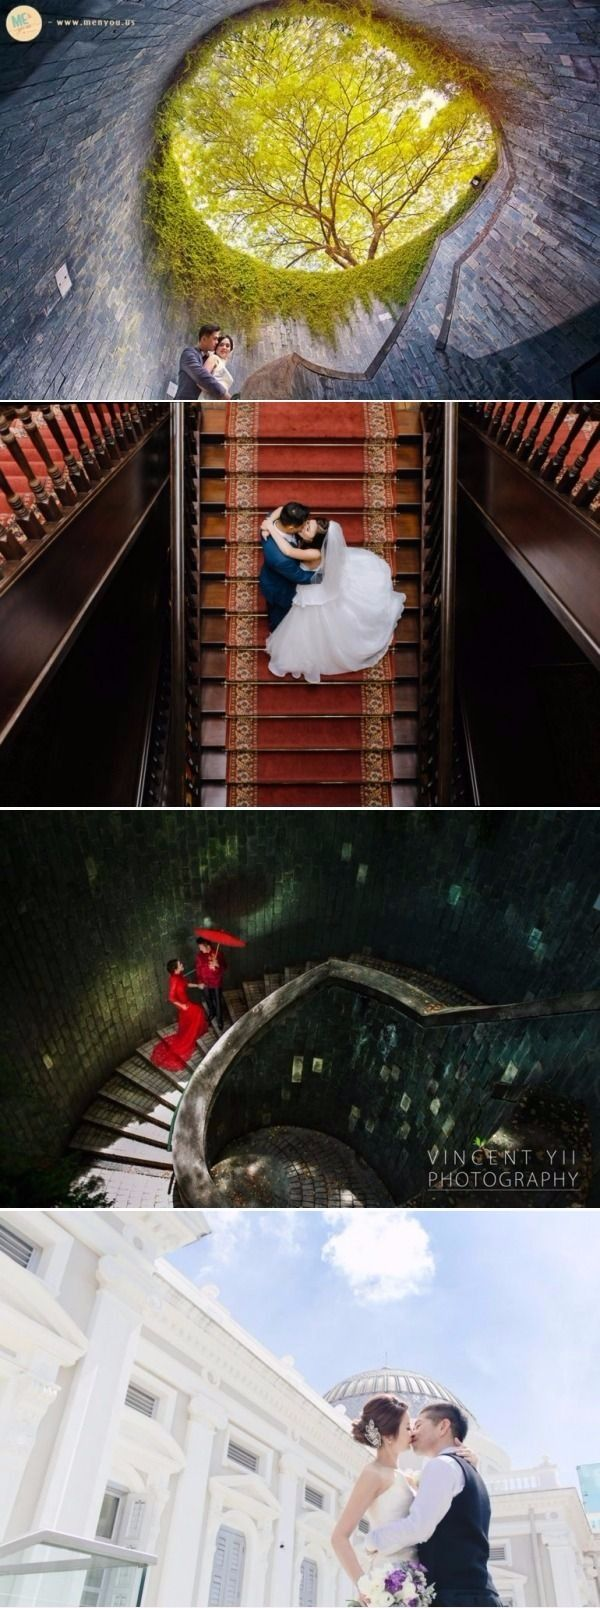 Singapore pre-wedding photoshoot locations: 10 amazing wedding photoshoot locations in Singapore that are filled with so much history. - History and heritage, Elegant, Hotels, Museums, Parks, Shophouses